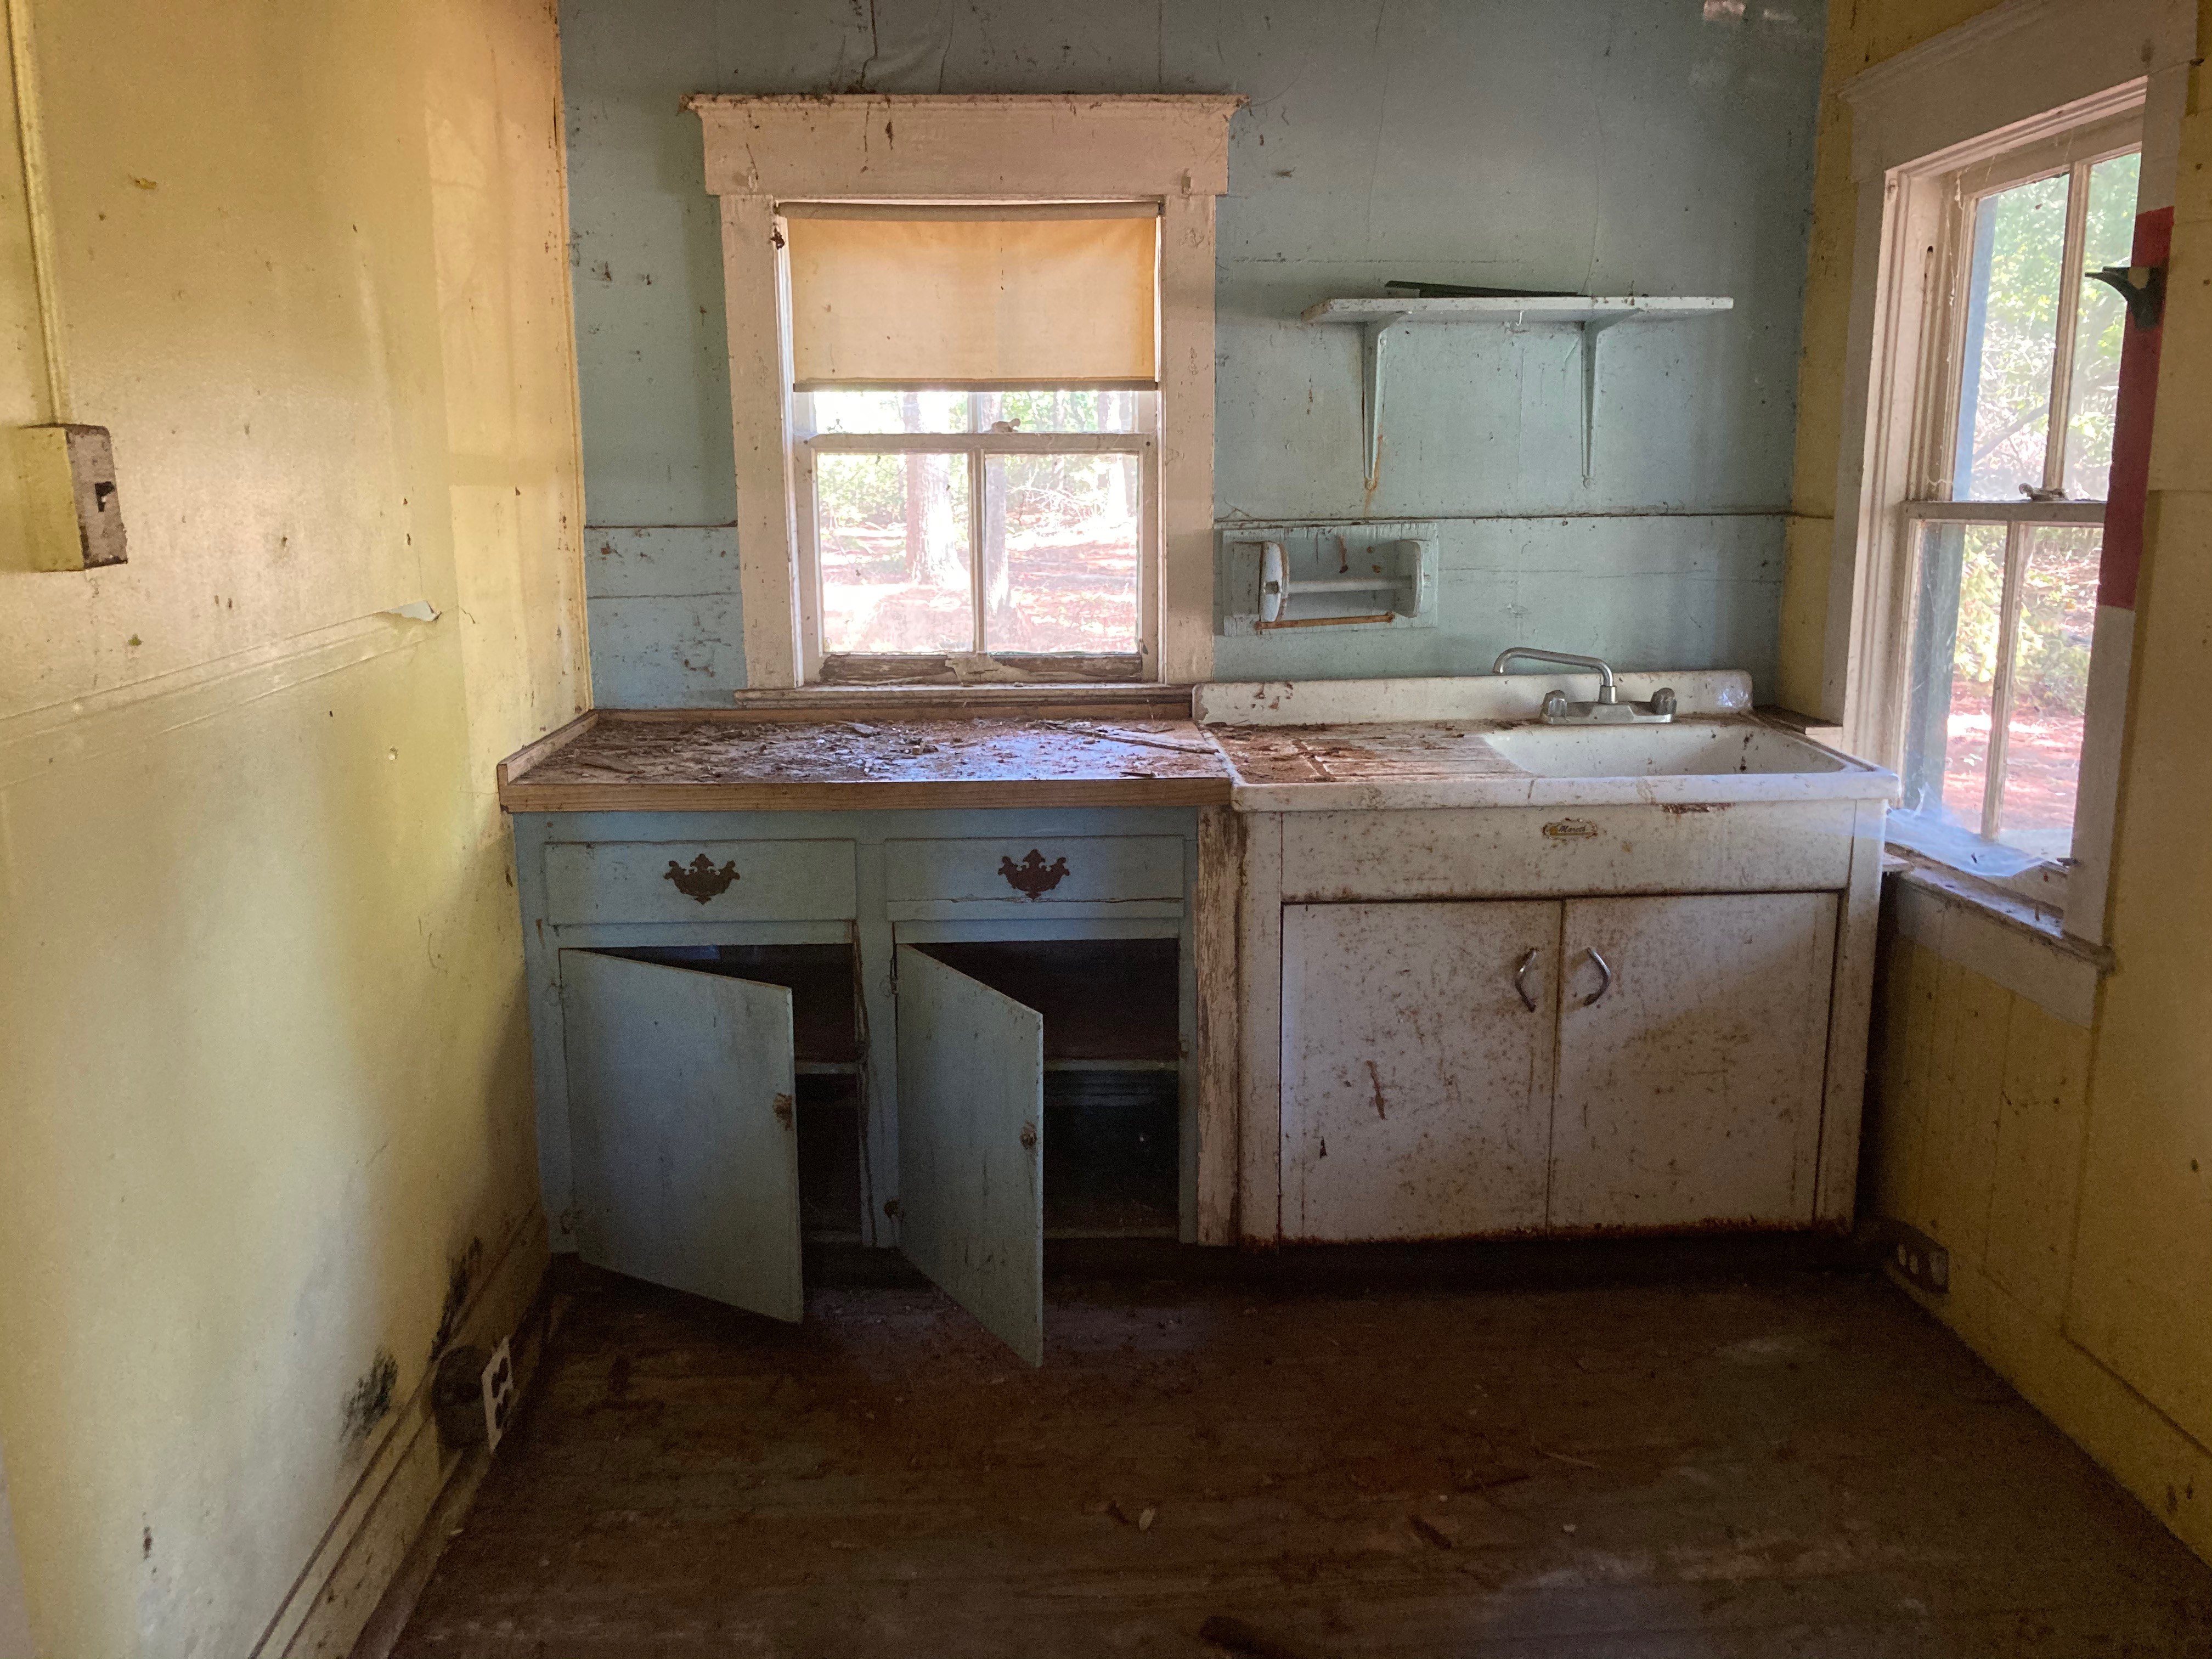 Dilapidated kitchen of Foreman House.